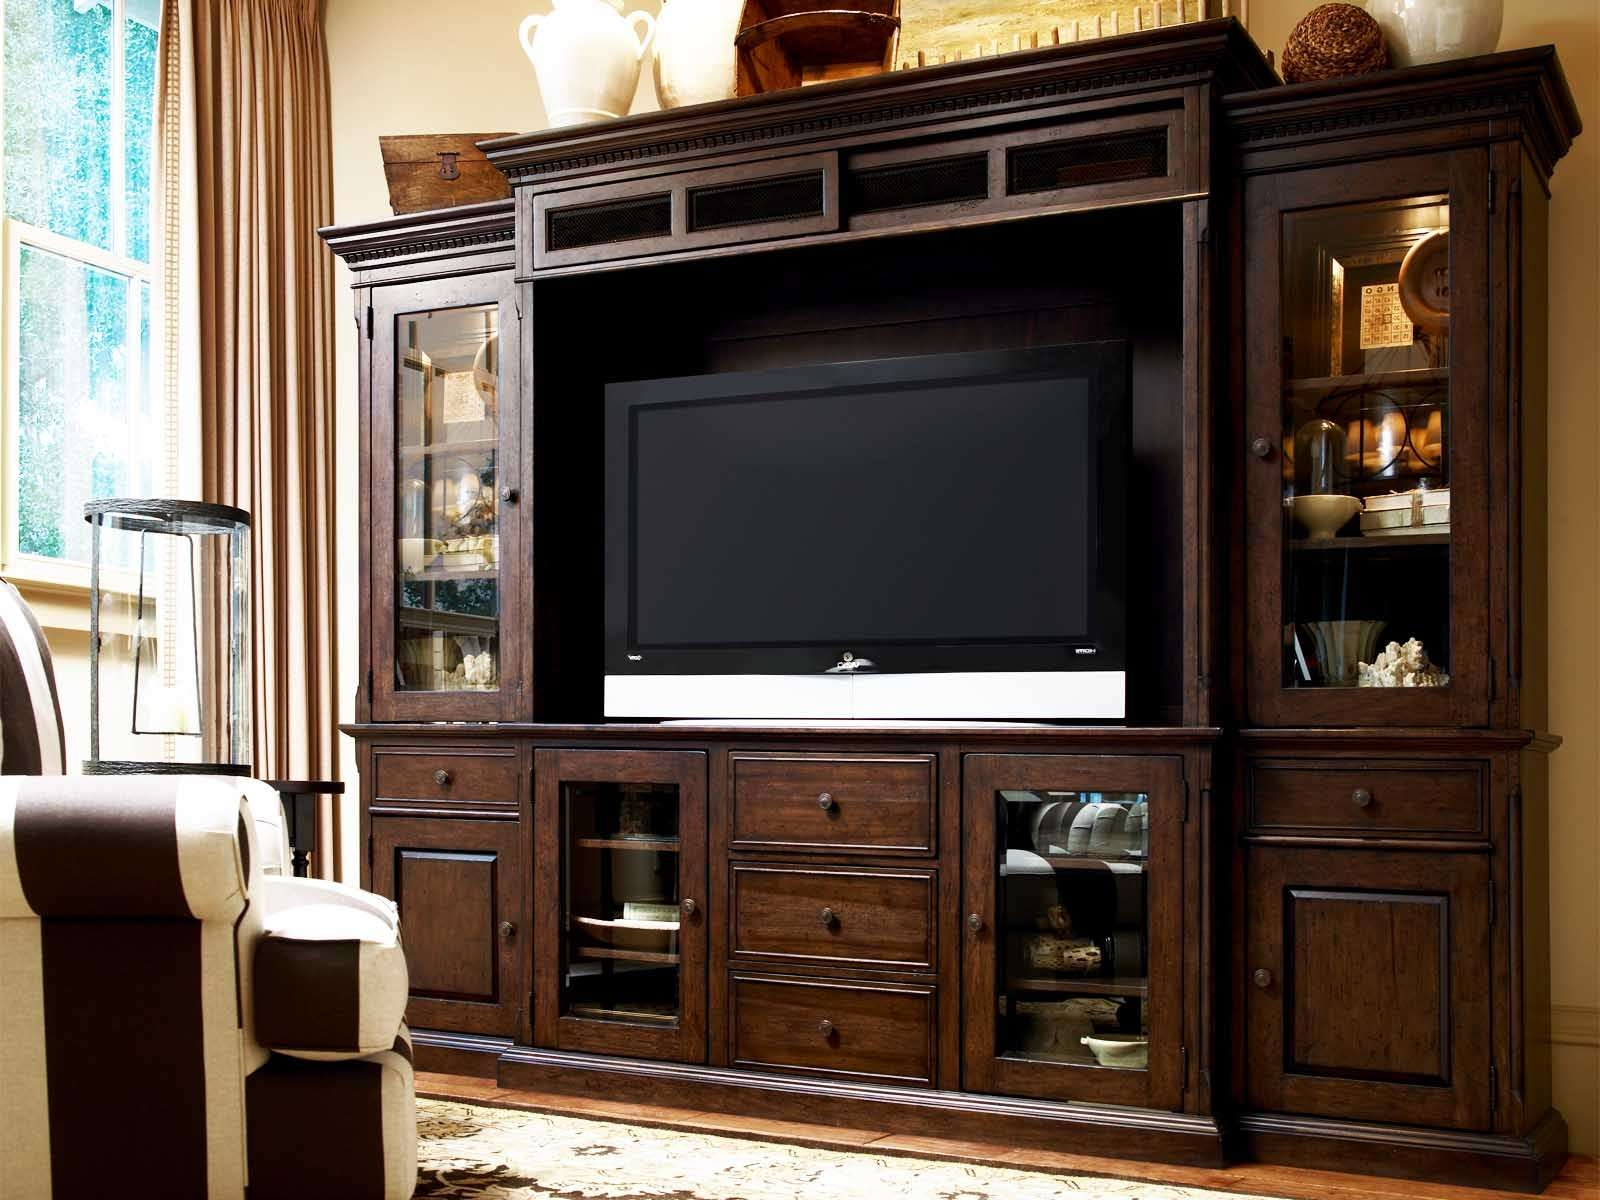 Wood Tv Stand With Glass Doors Images – Doors Design Ideas With Regard To Wooden Tv Stands With Glass Doors (View 14 of 15)